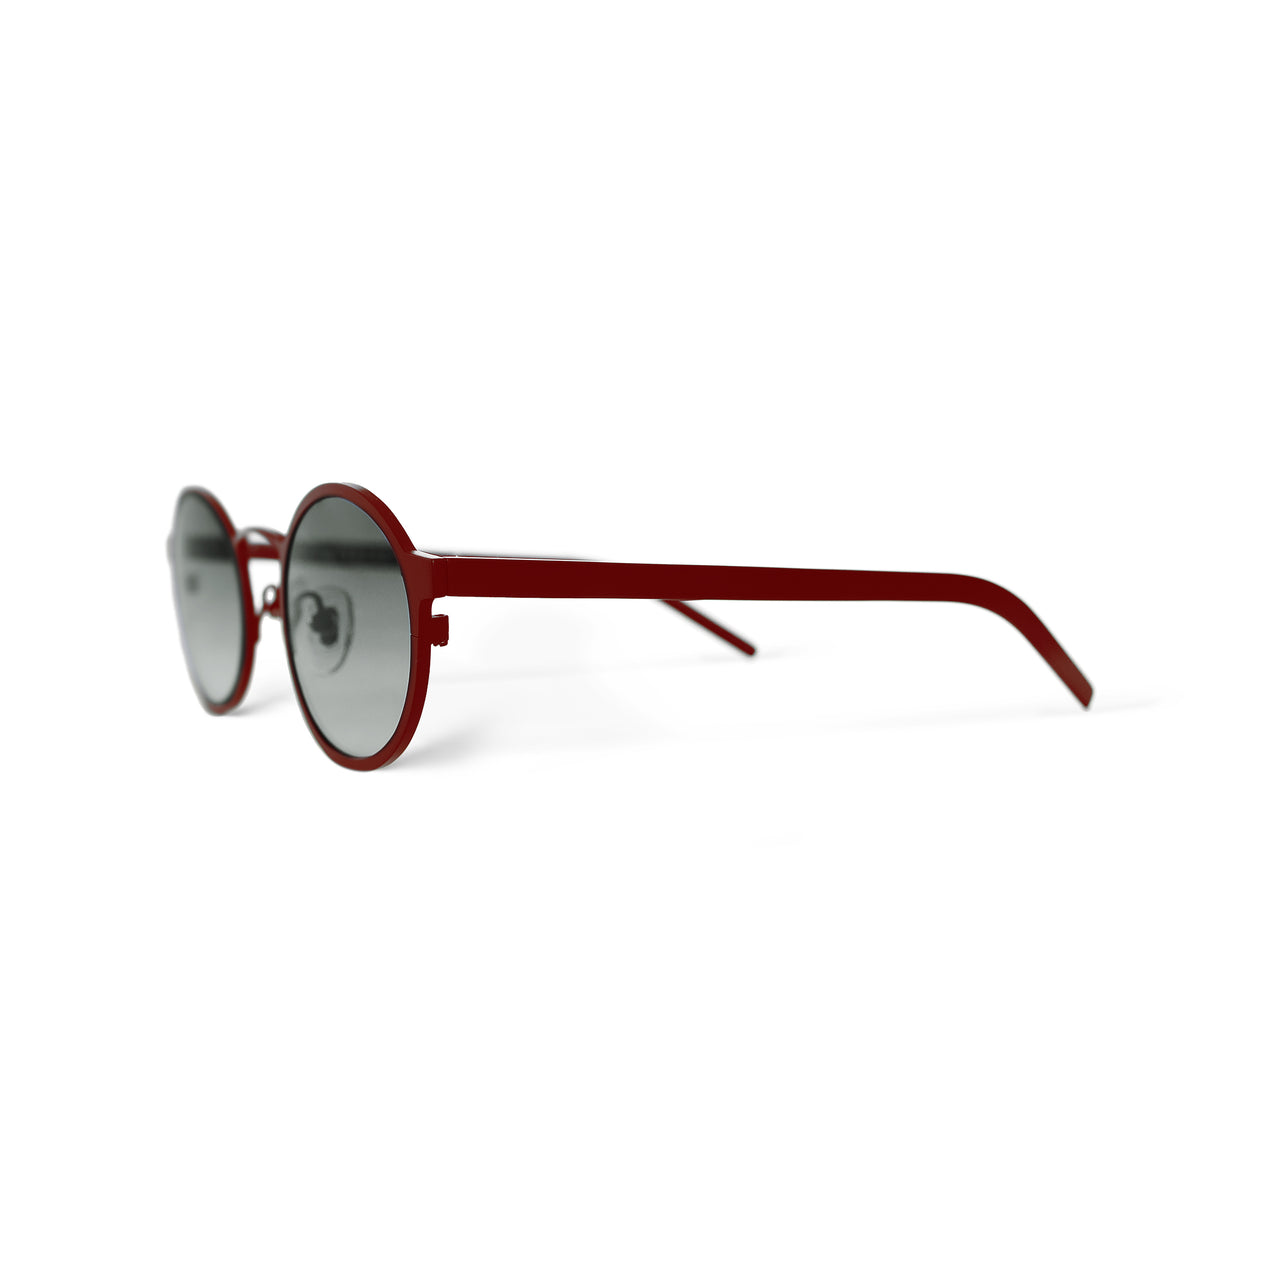 Metal. Crimson. Smoke Lens. - BLYSZAK eyewear eyewear - eyewear, optical, sunglasses